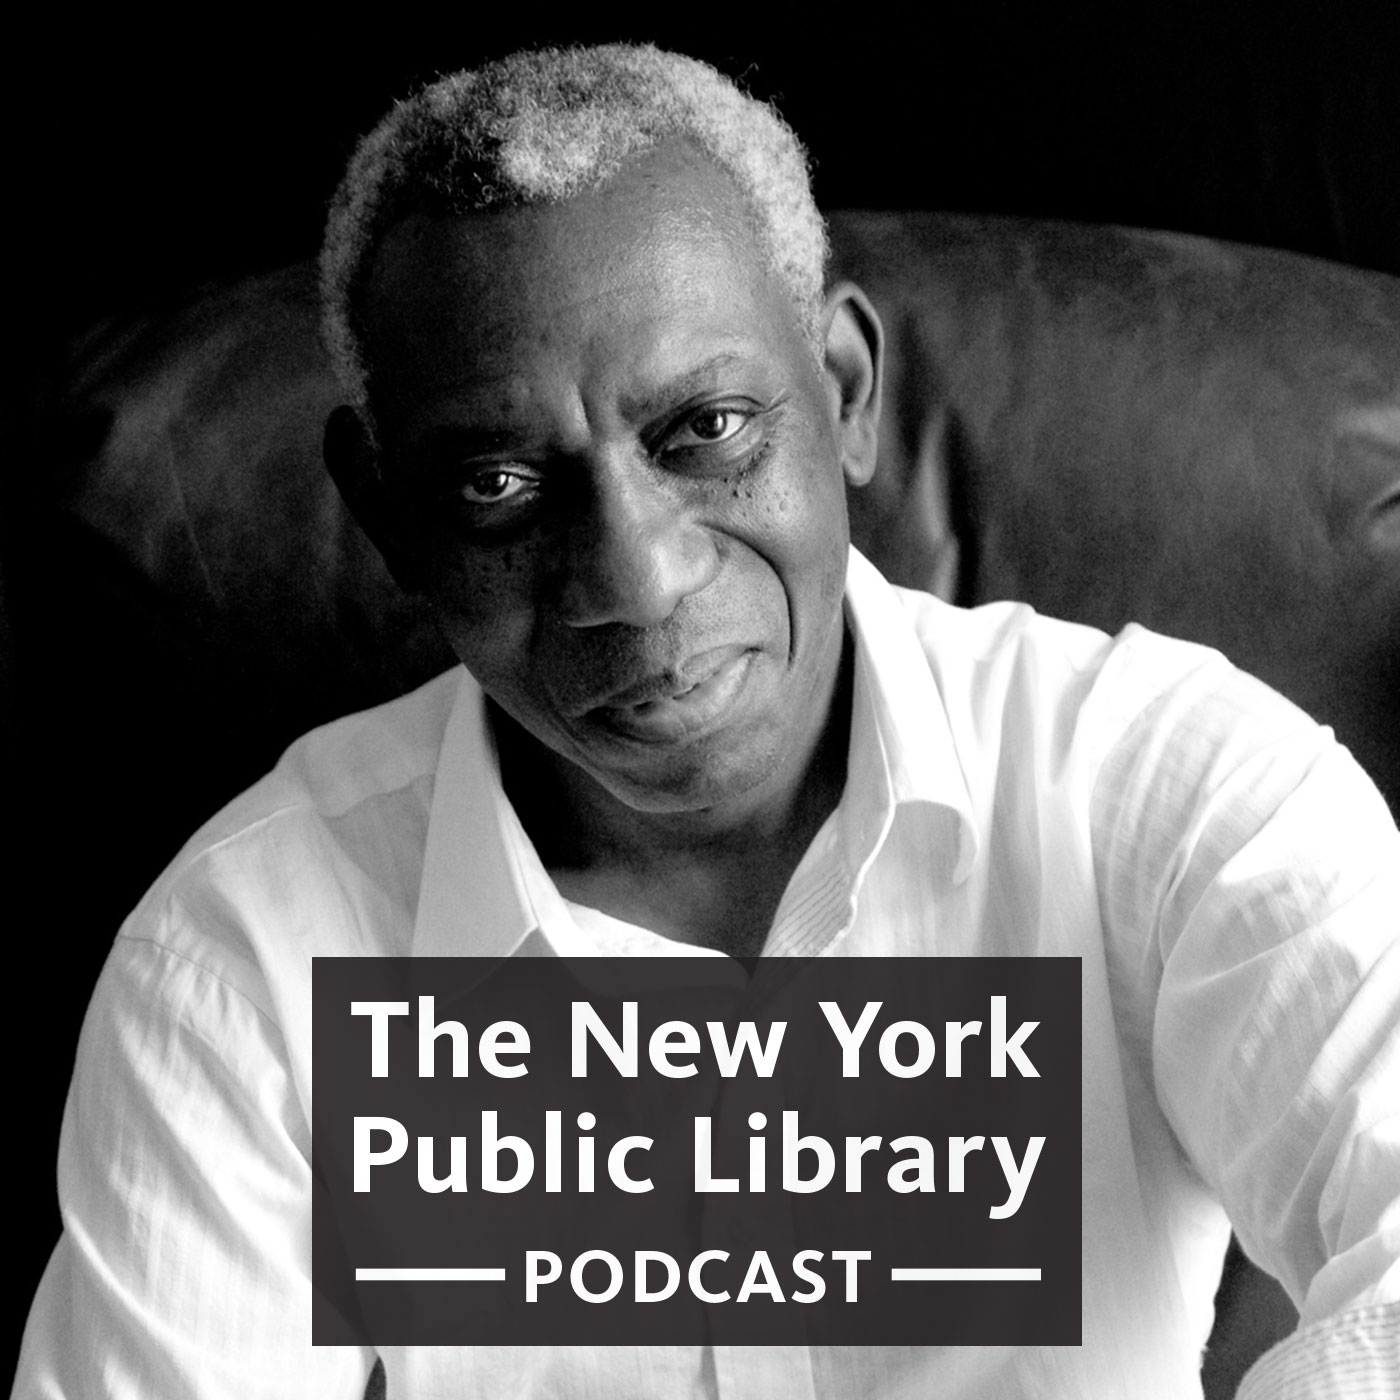 Yusef Komunyakaa on Politics, Imagery, & Memorizing Poetry